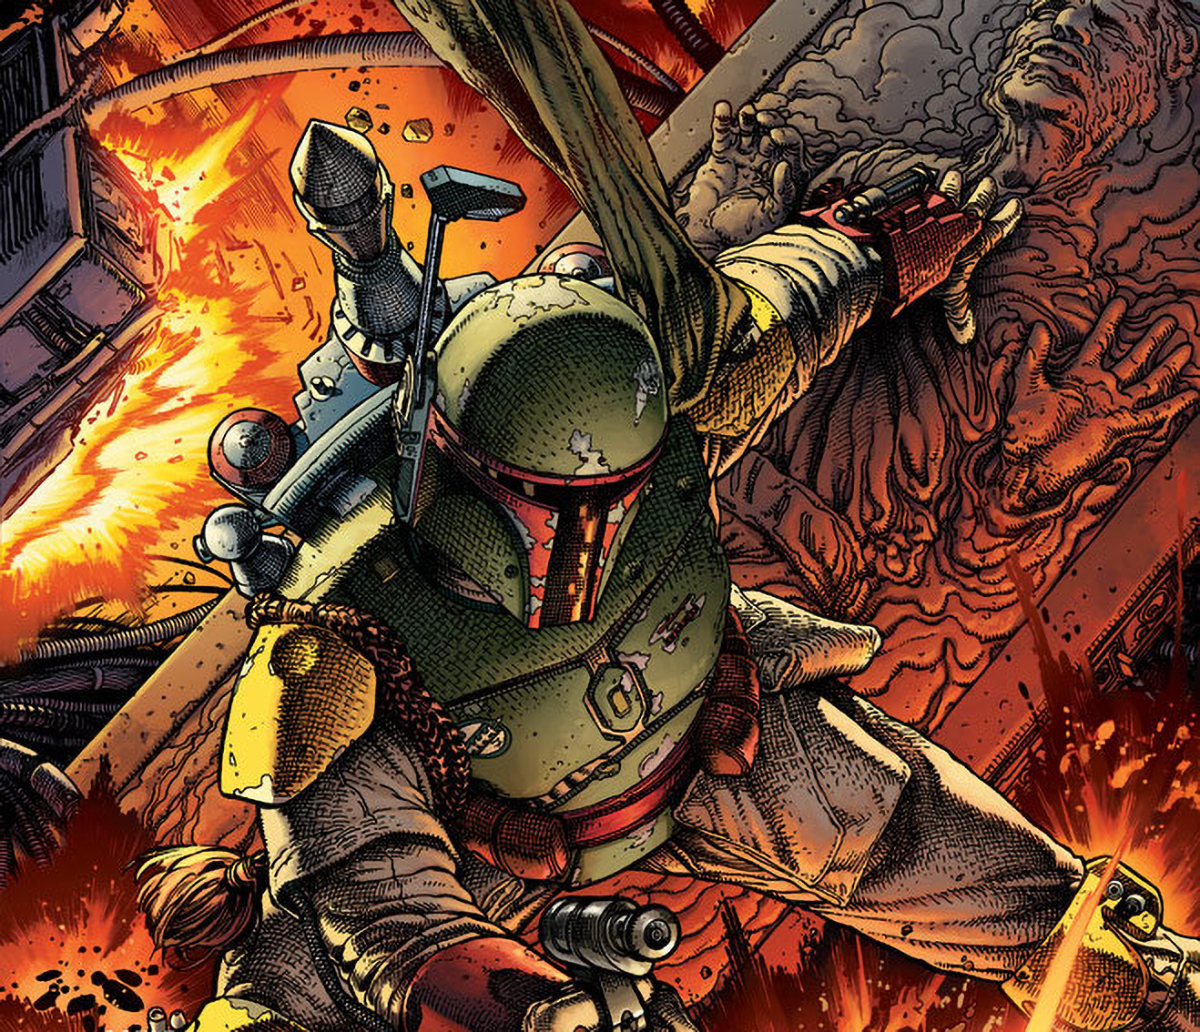 Marvel Comics launching 'War of the Bounty Hunters' event May 2021